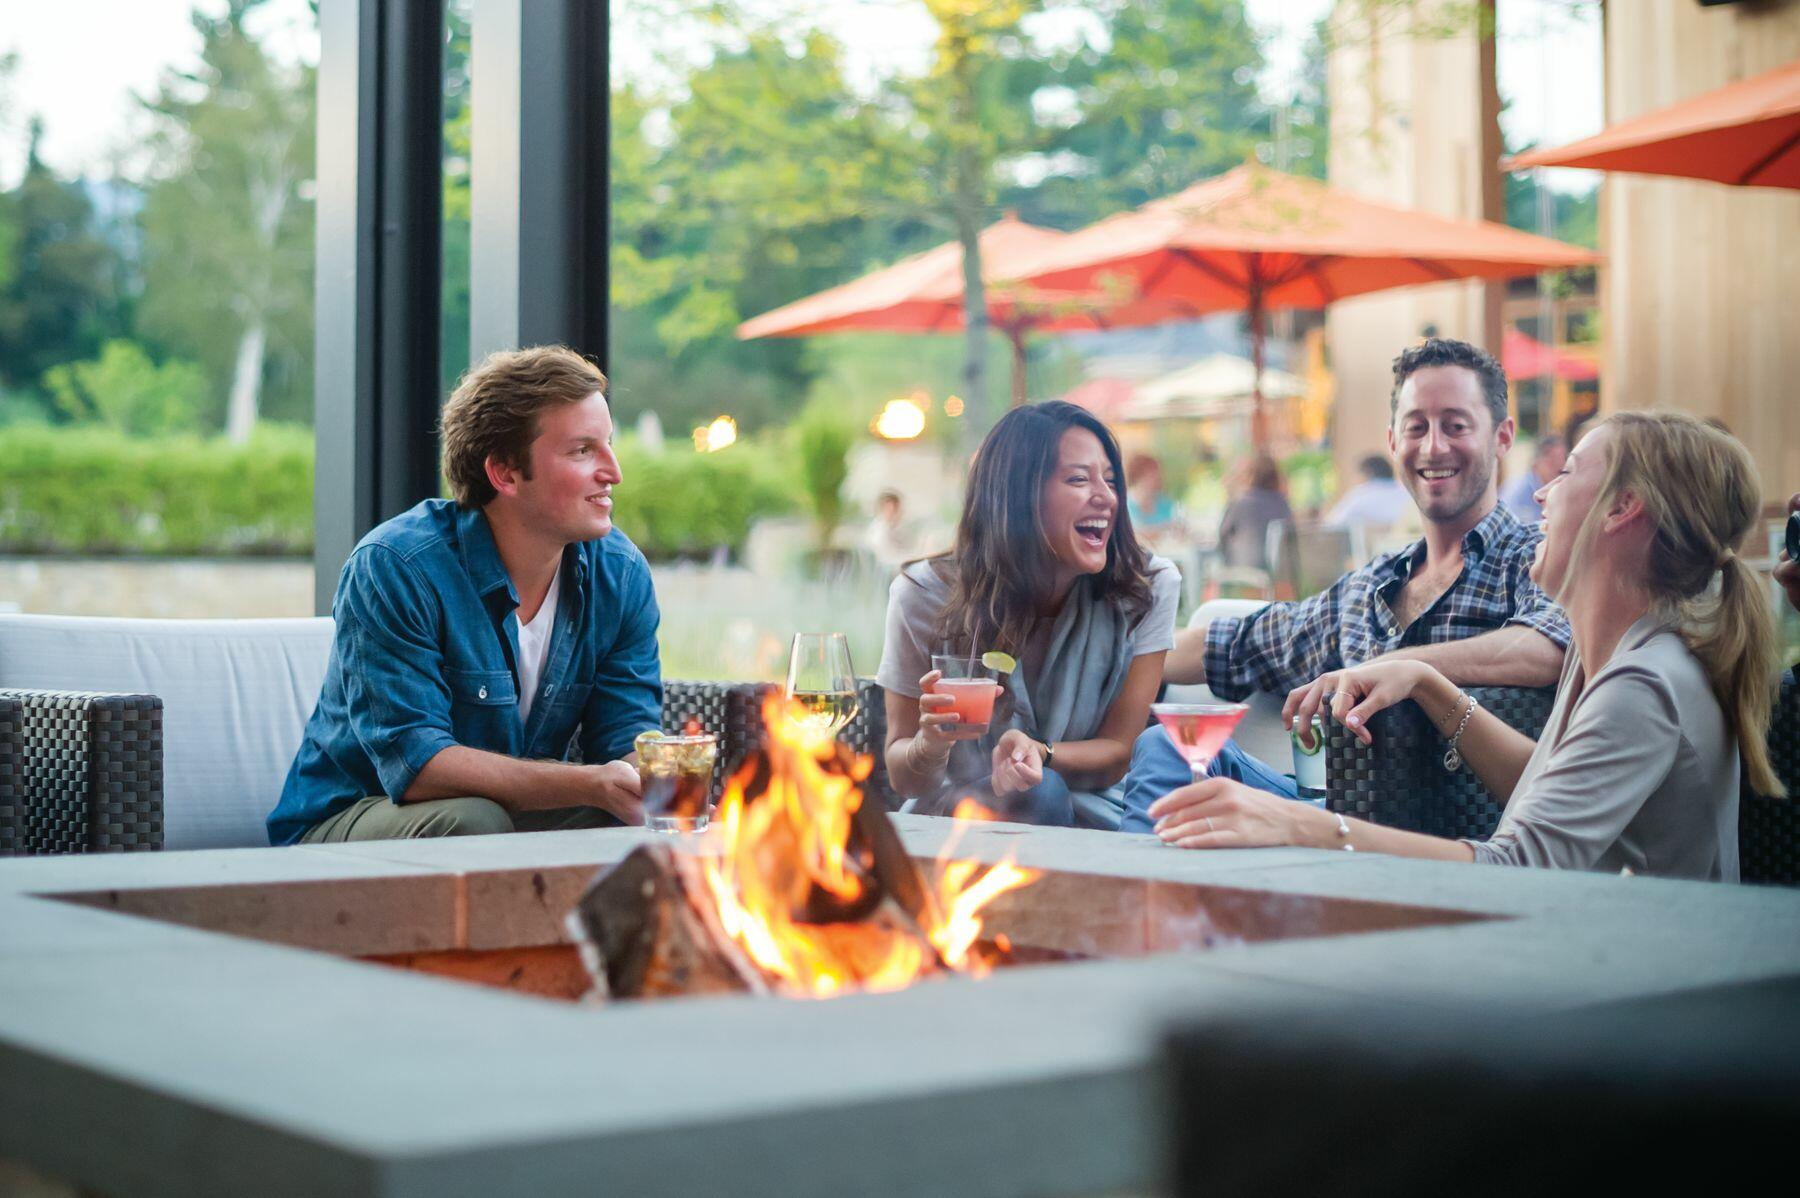 Four friends gathered around a fire pit.